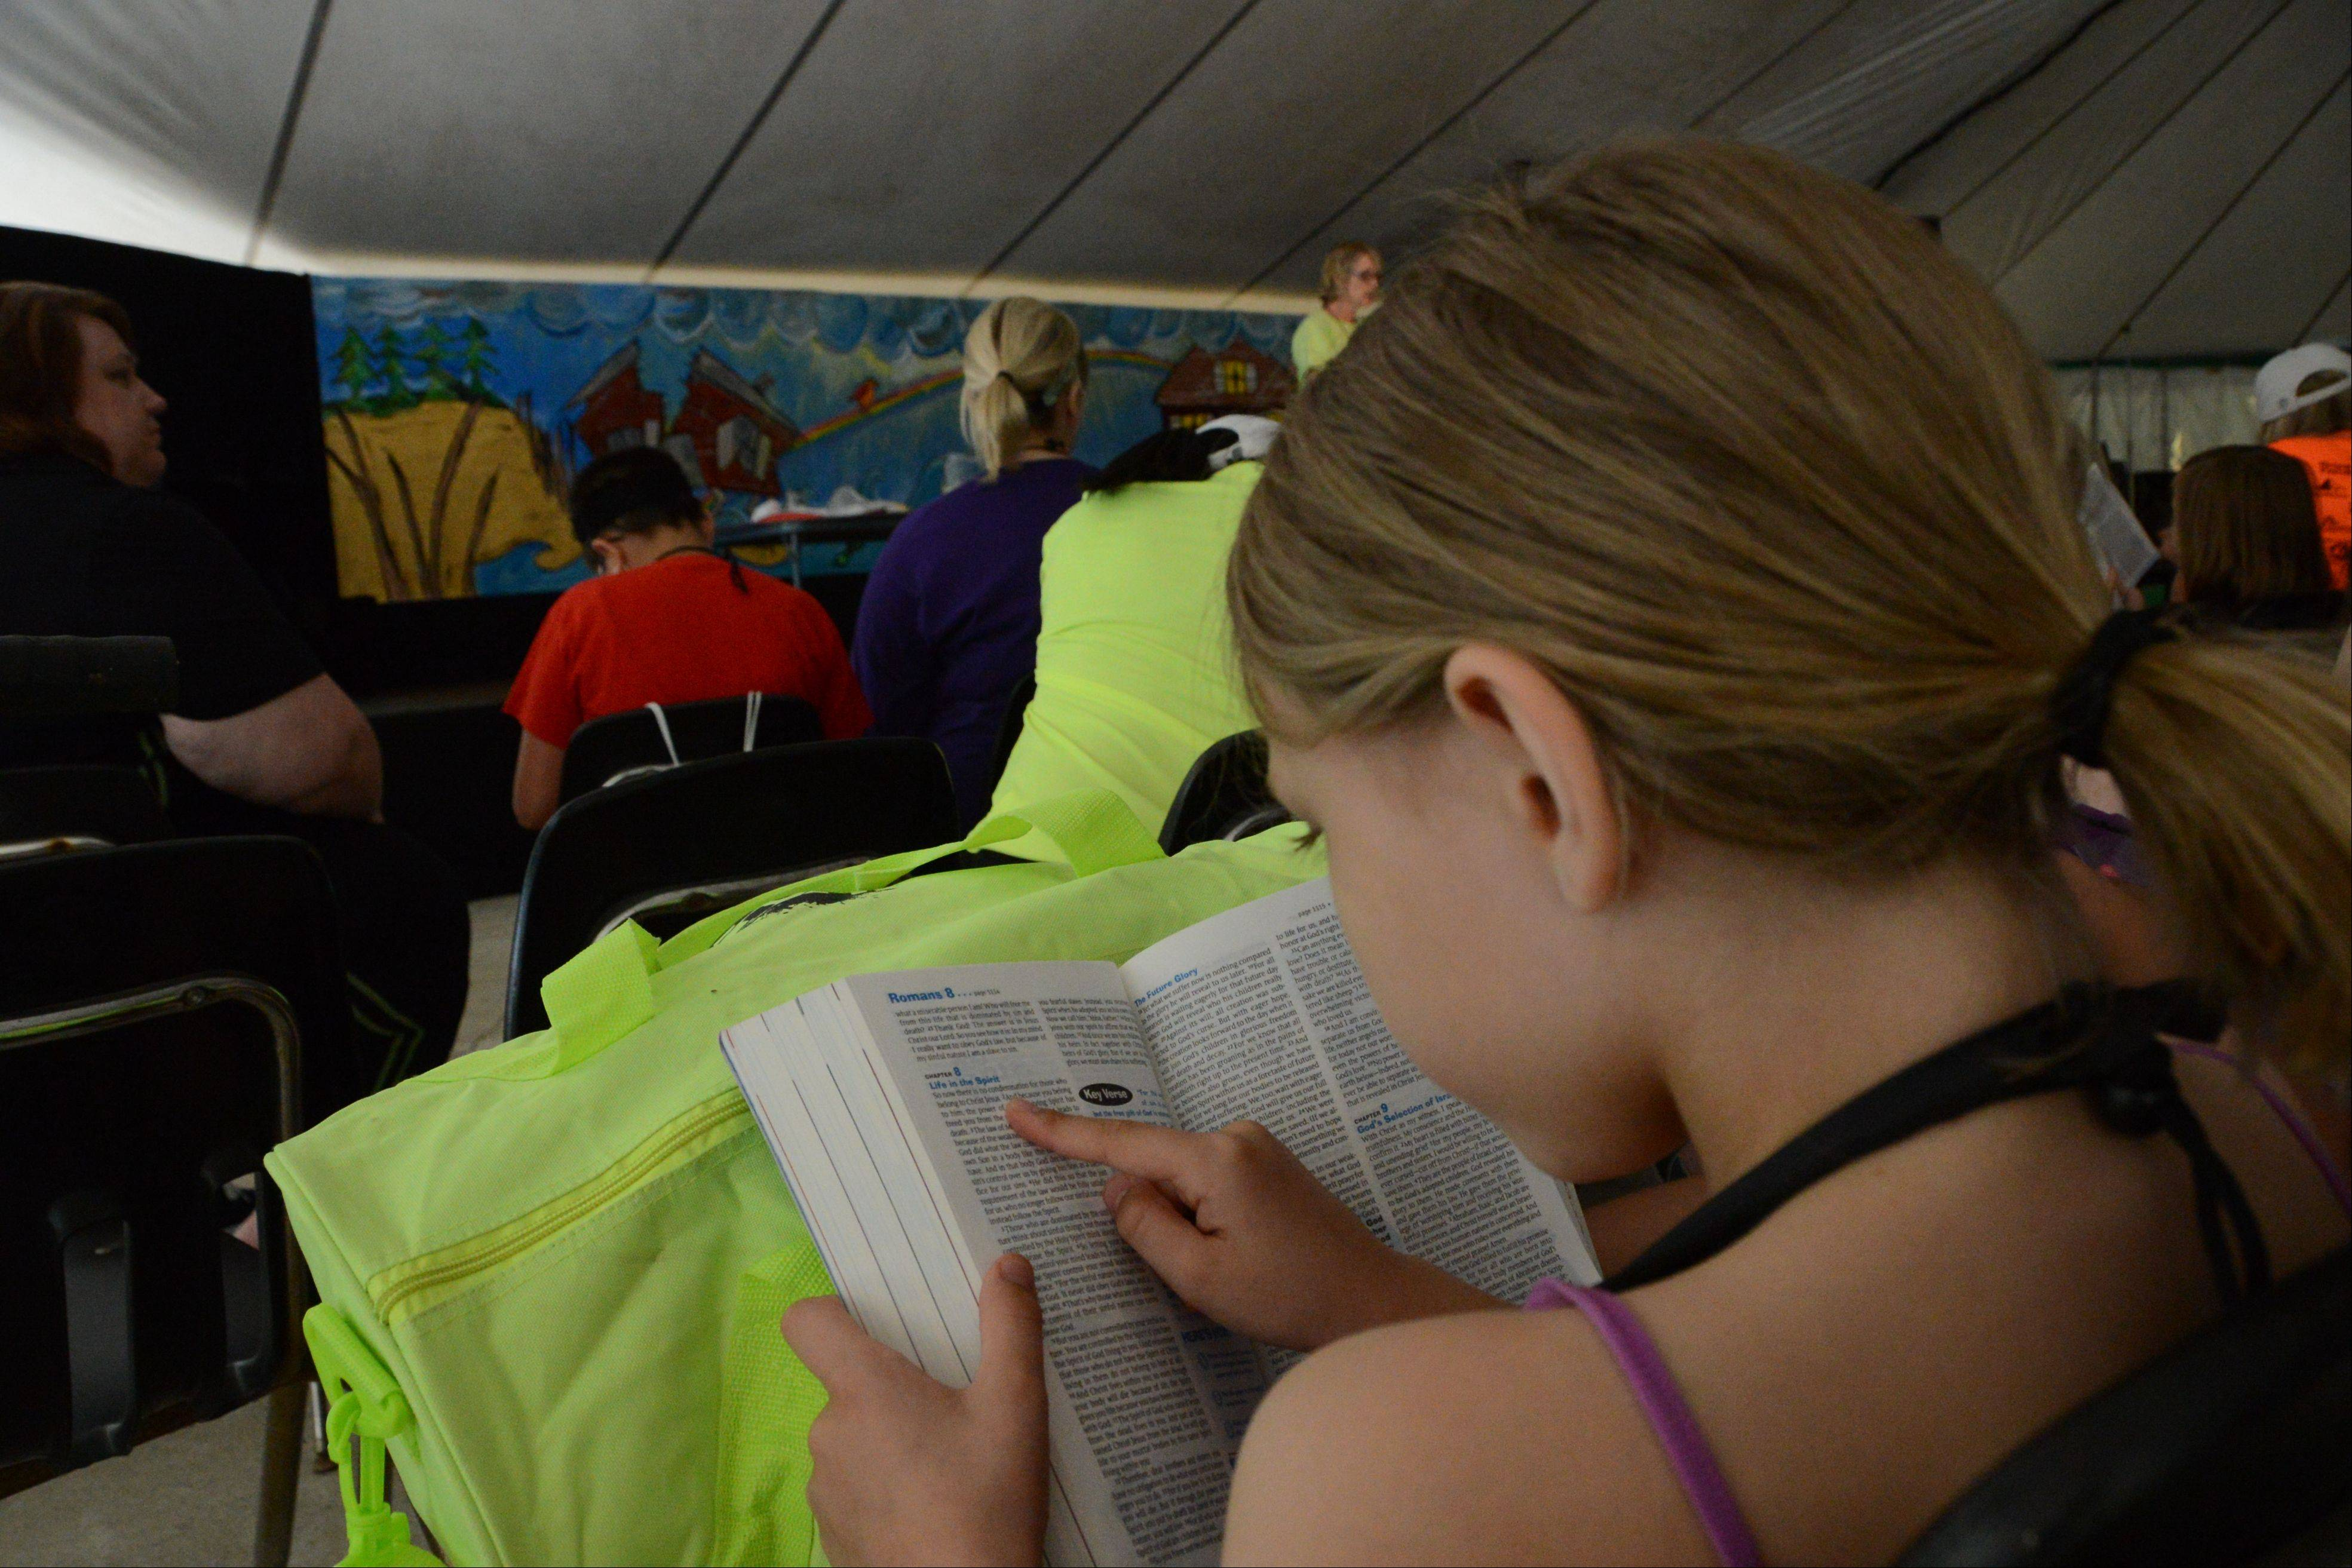 A camper uses her bible to follow along with the lesson at Royal Family Kids Camp in Wisconsin.